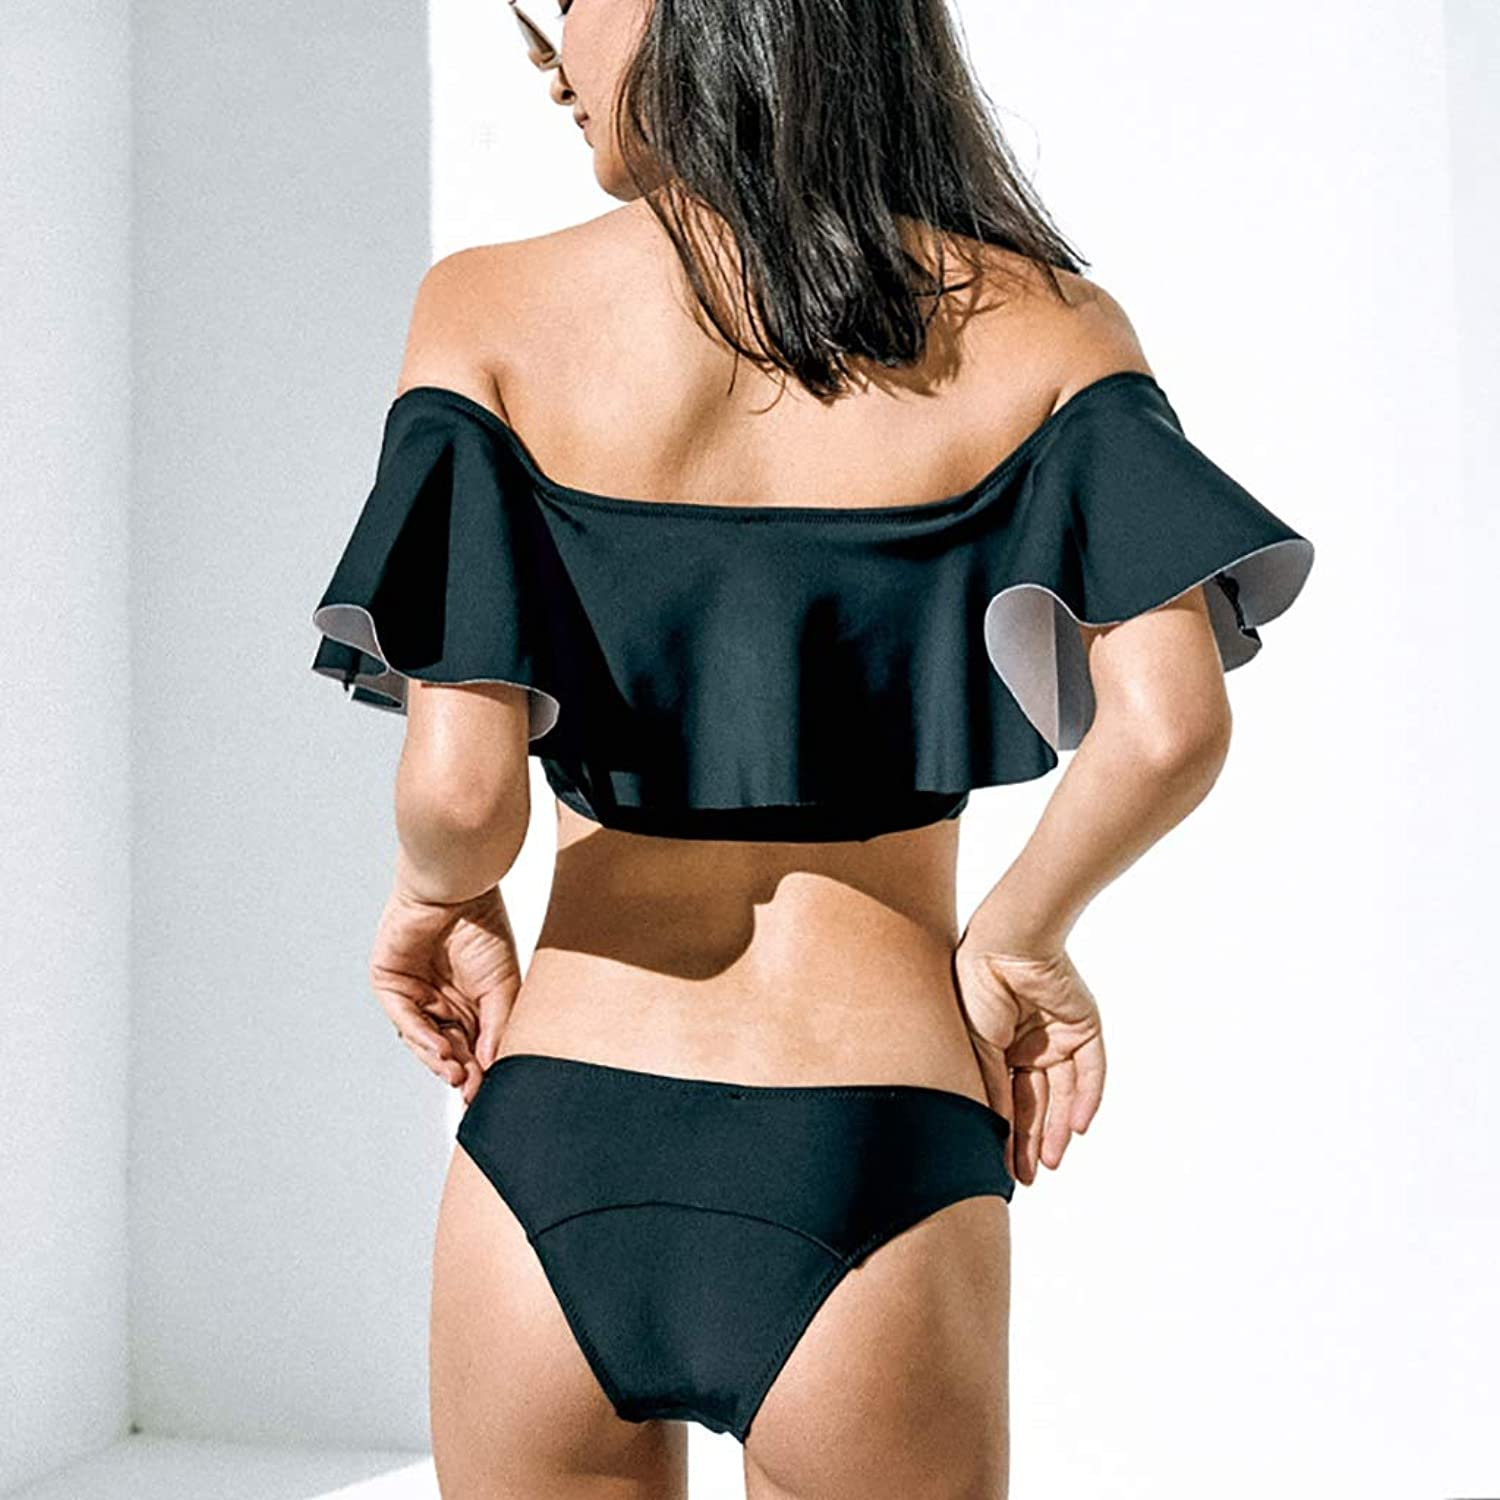 ZXCC Black Swimsuit Female, Conservatively Gathered Ruffled Split Beach Swimsuit (color  Black) (color   BLACK, Size   L)